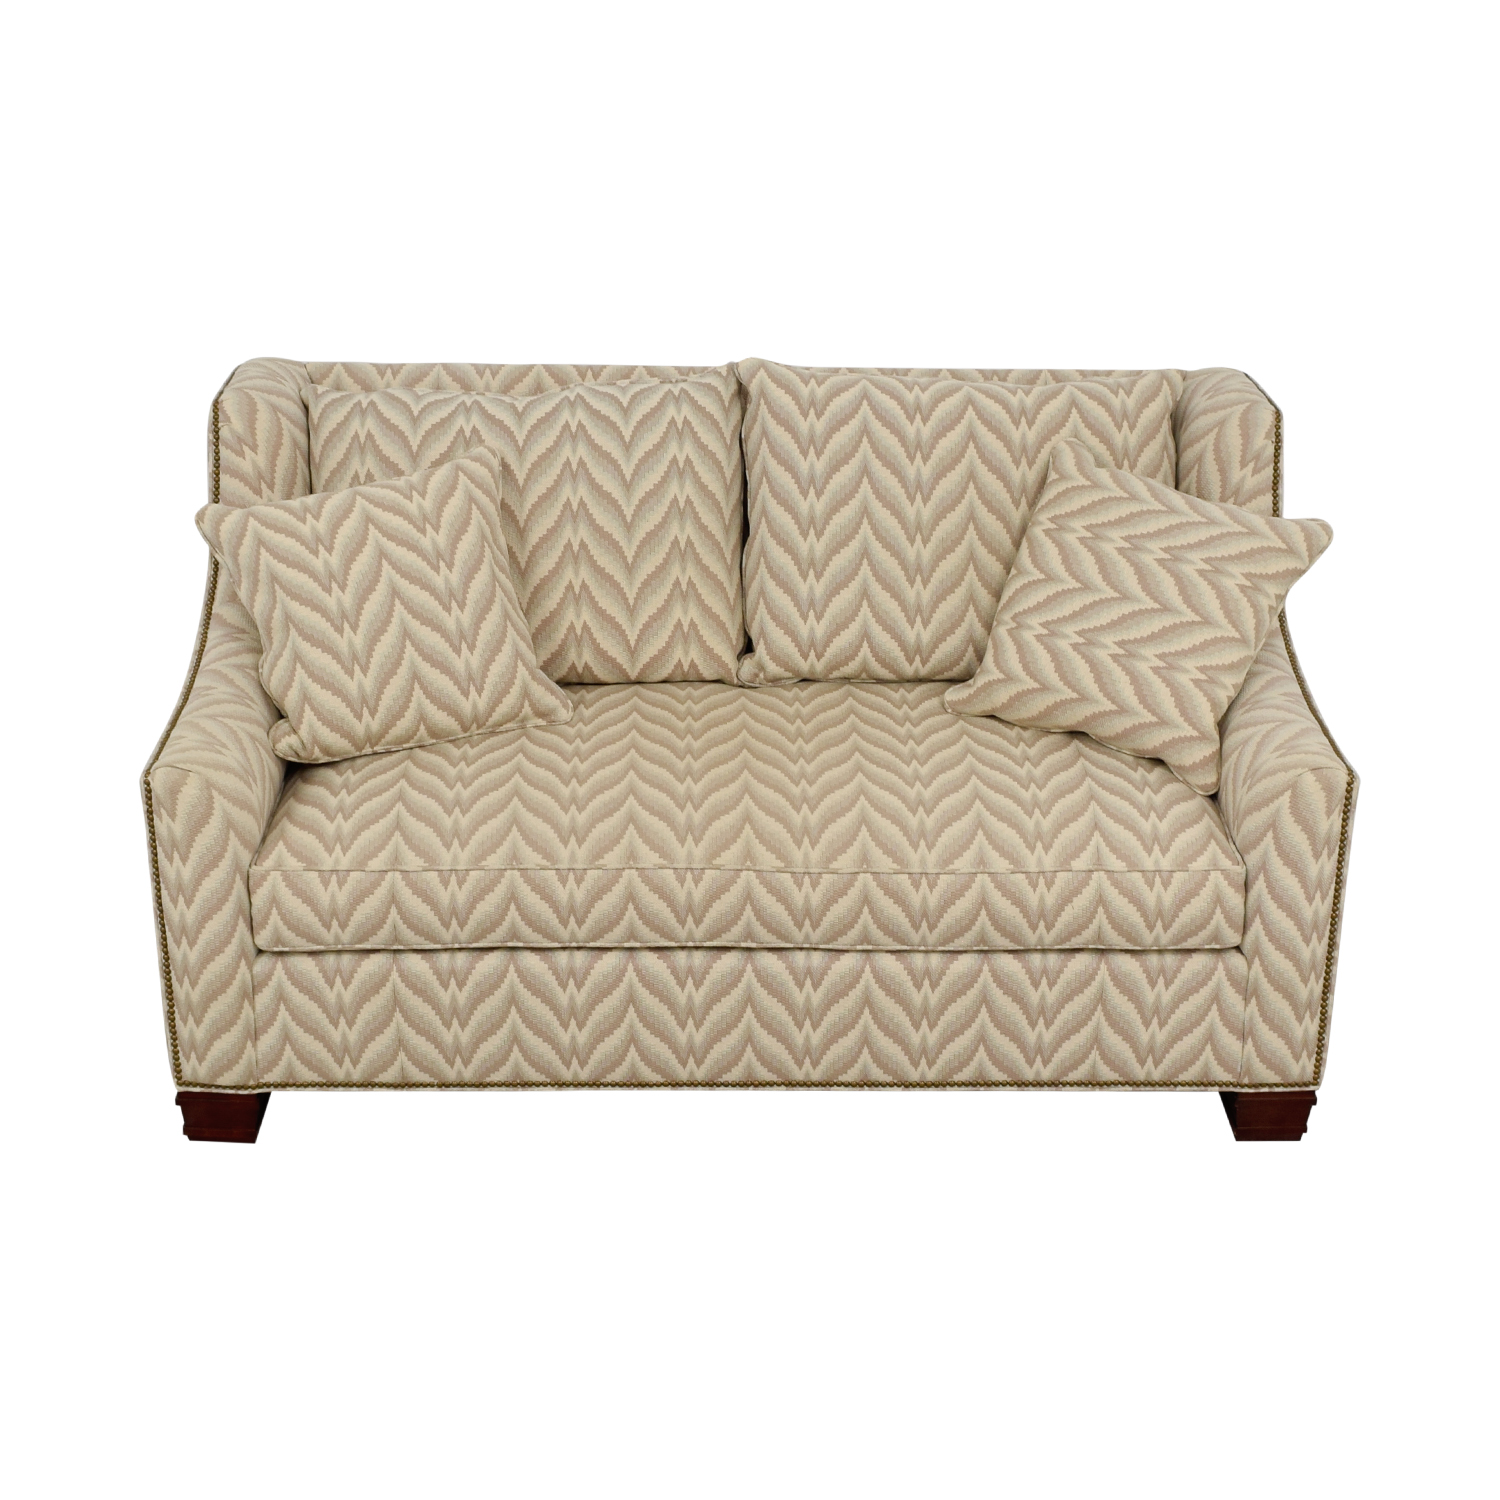 The Hickory Chair Furniture Co. The Hickory Chair Furniture Co. Chevron Nailhead Loveseat price